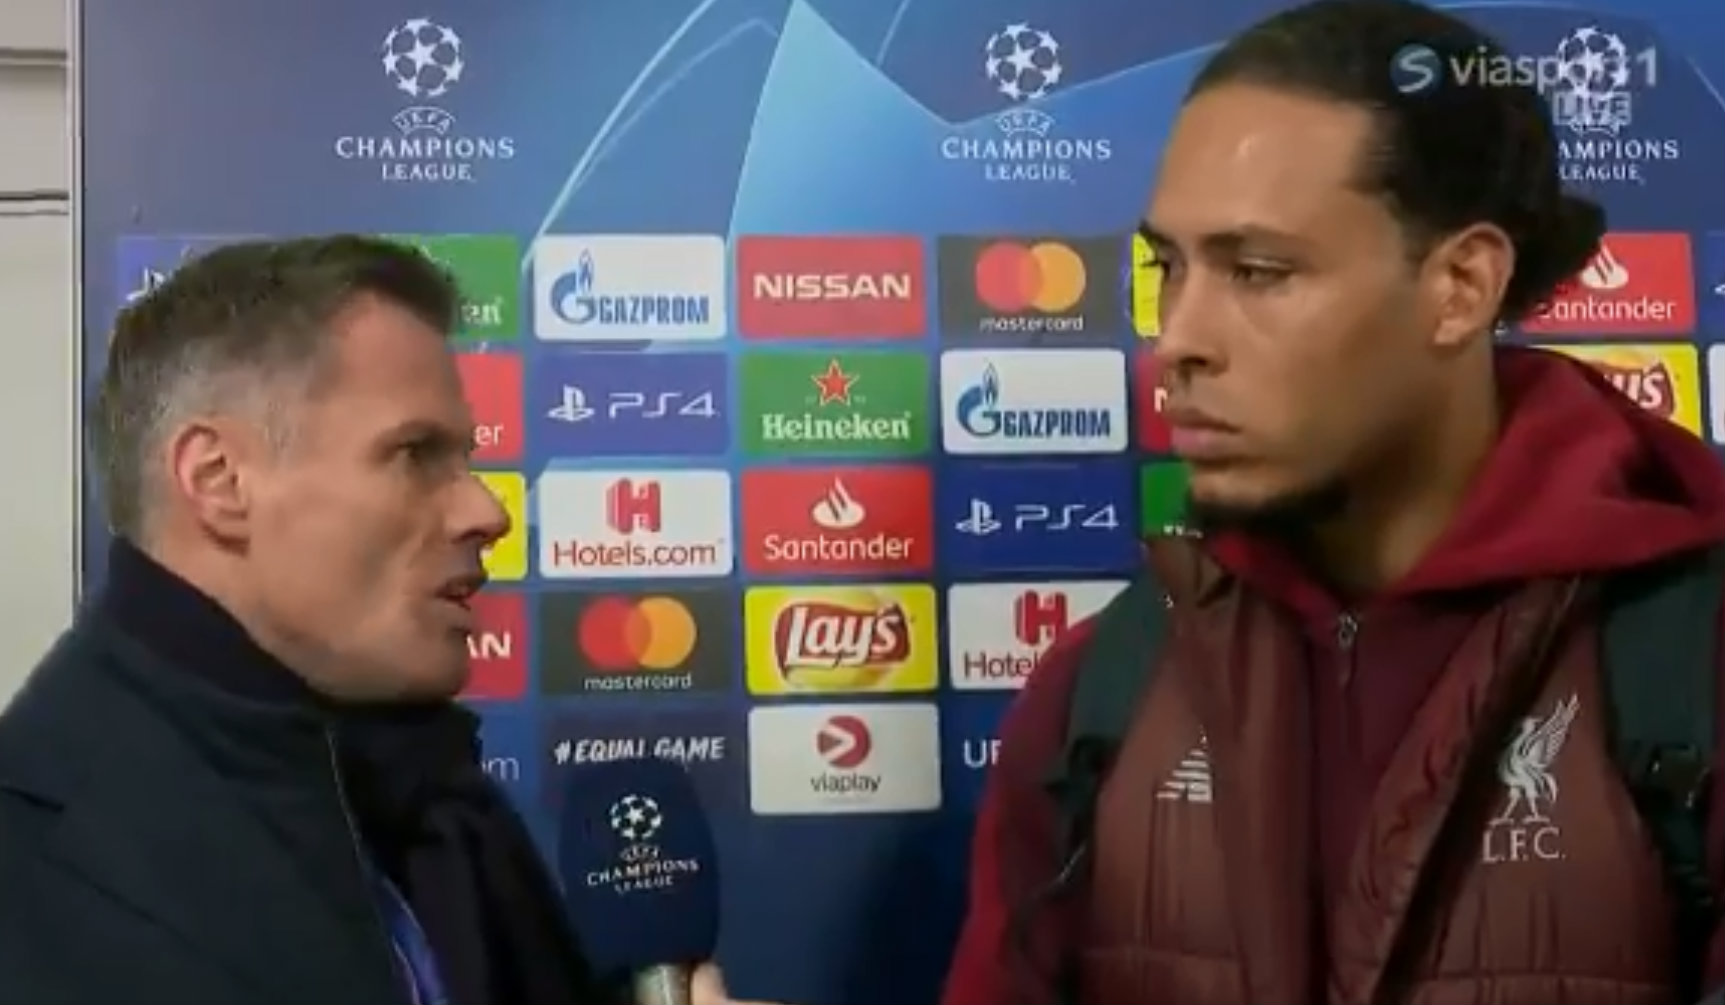 Jamie Carragher predicts Liverpool will go 'all the way' following Bayern Munich victory